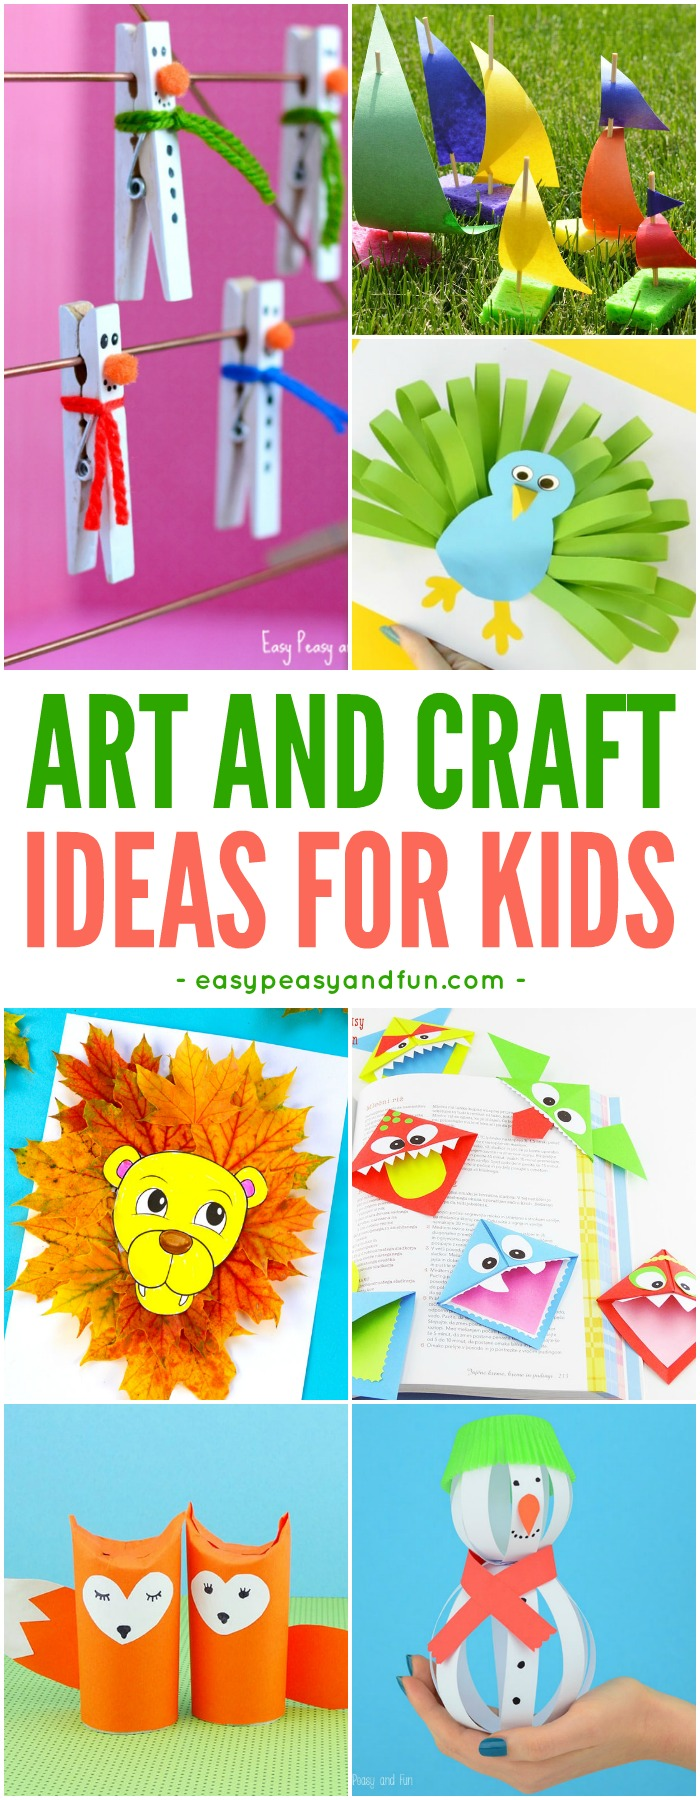 Crafts For Kids – Tons of Art and Craft